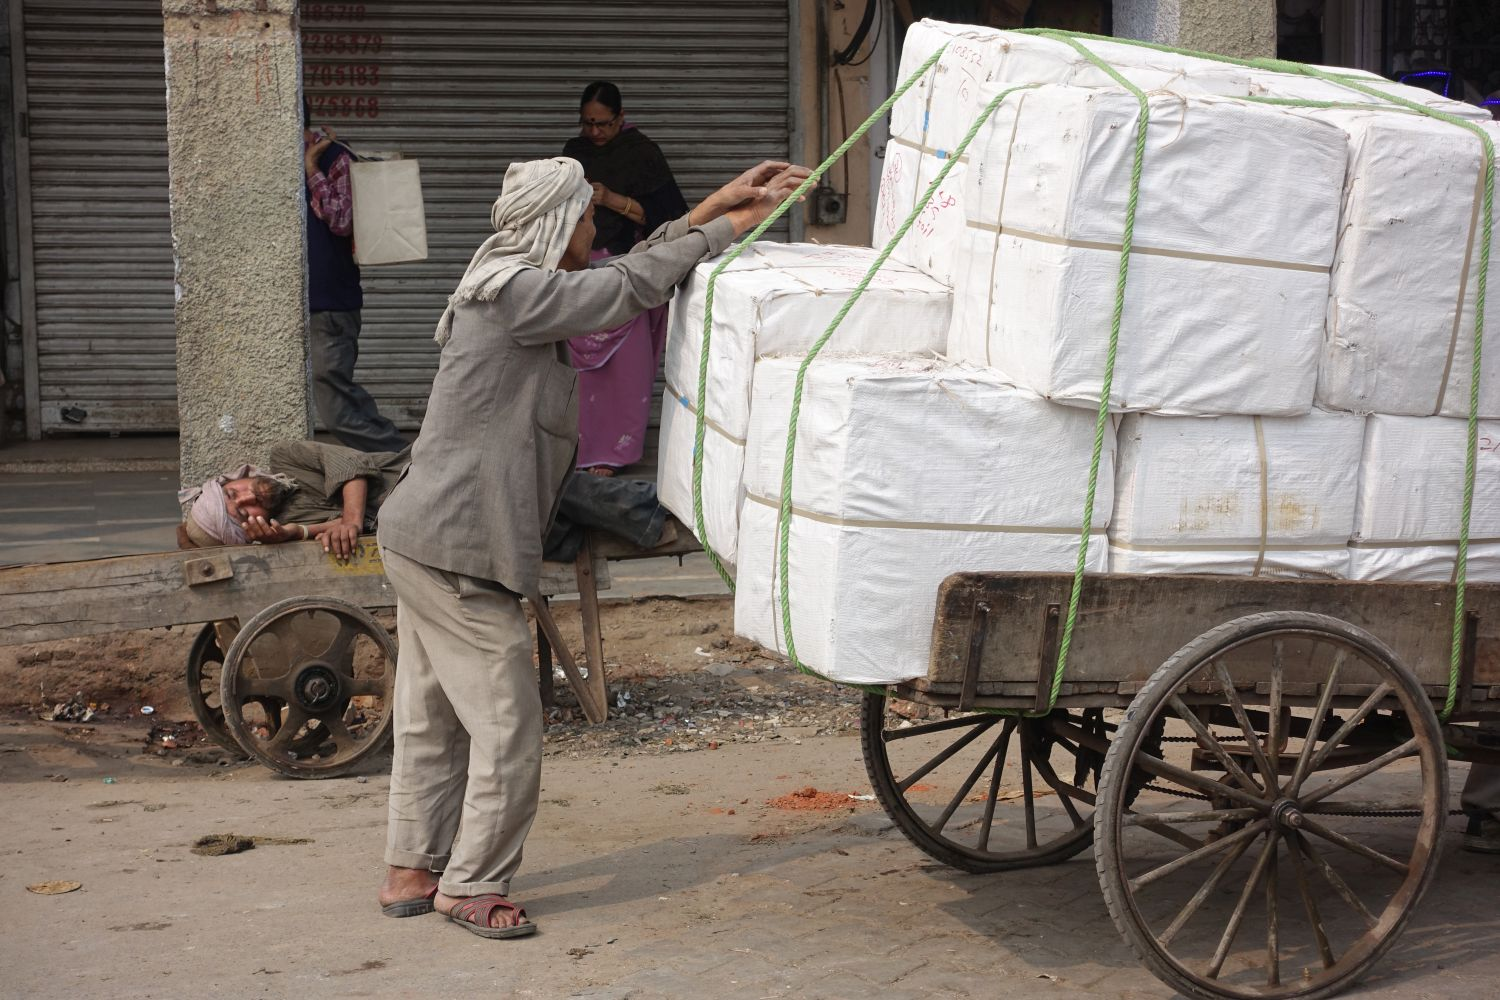 Old Delhi | Traffic in Chandni Chowk | Indian coolies | street photography ©sandrine cohen